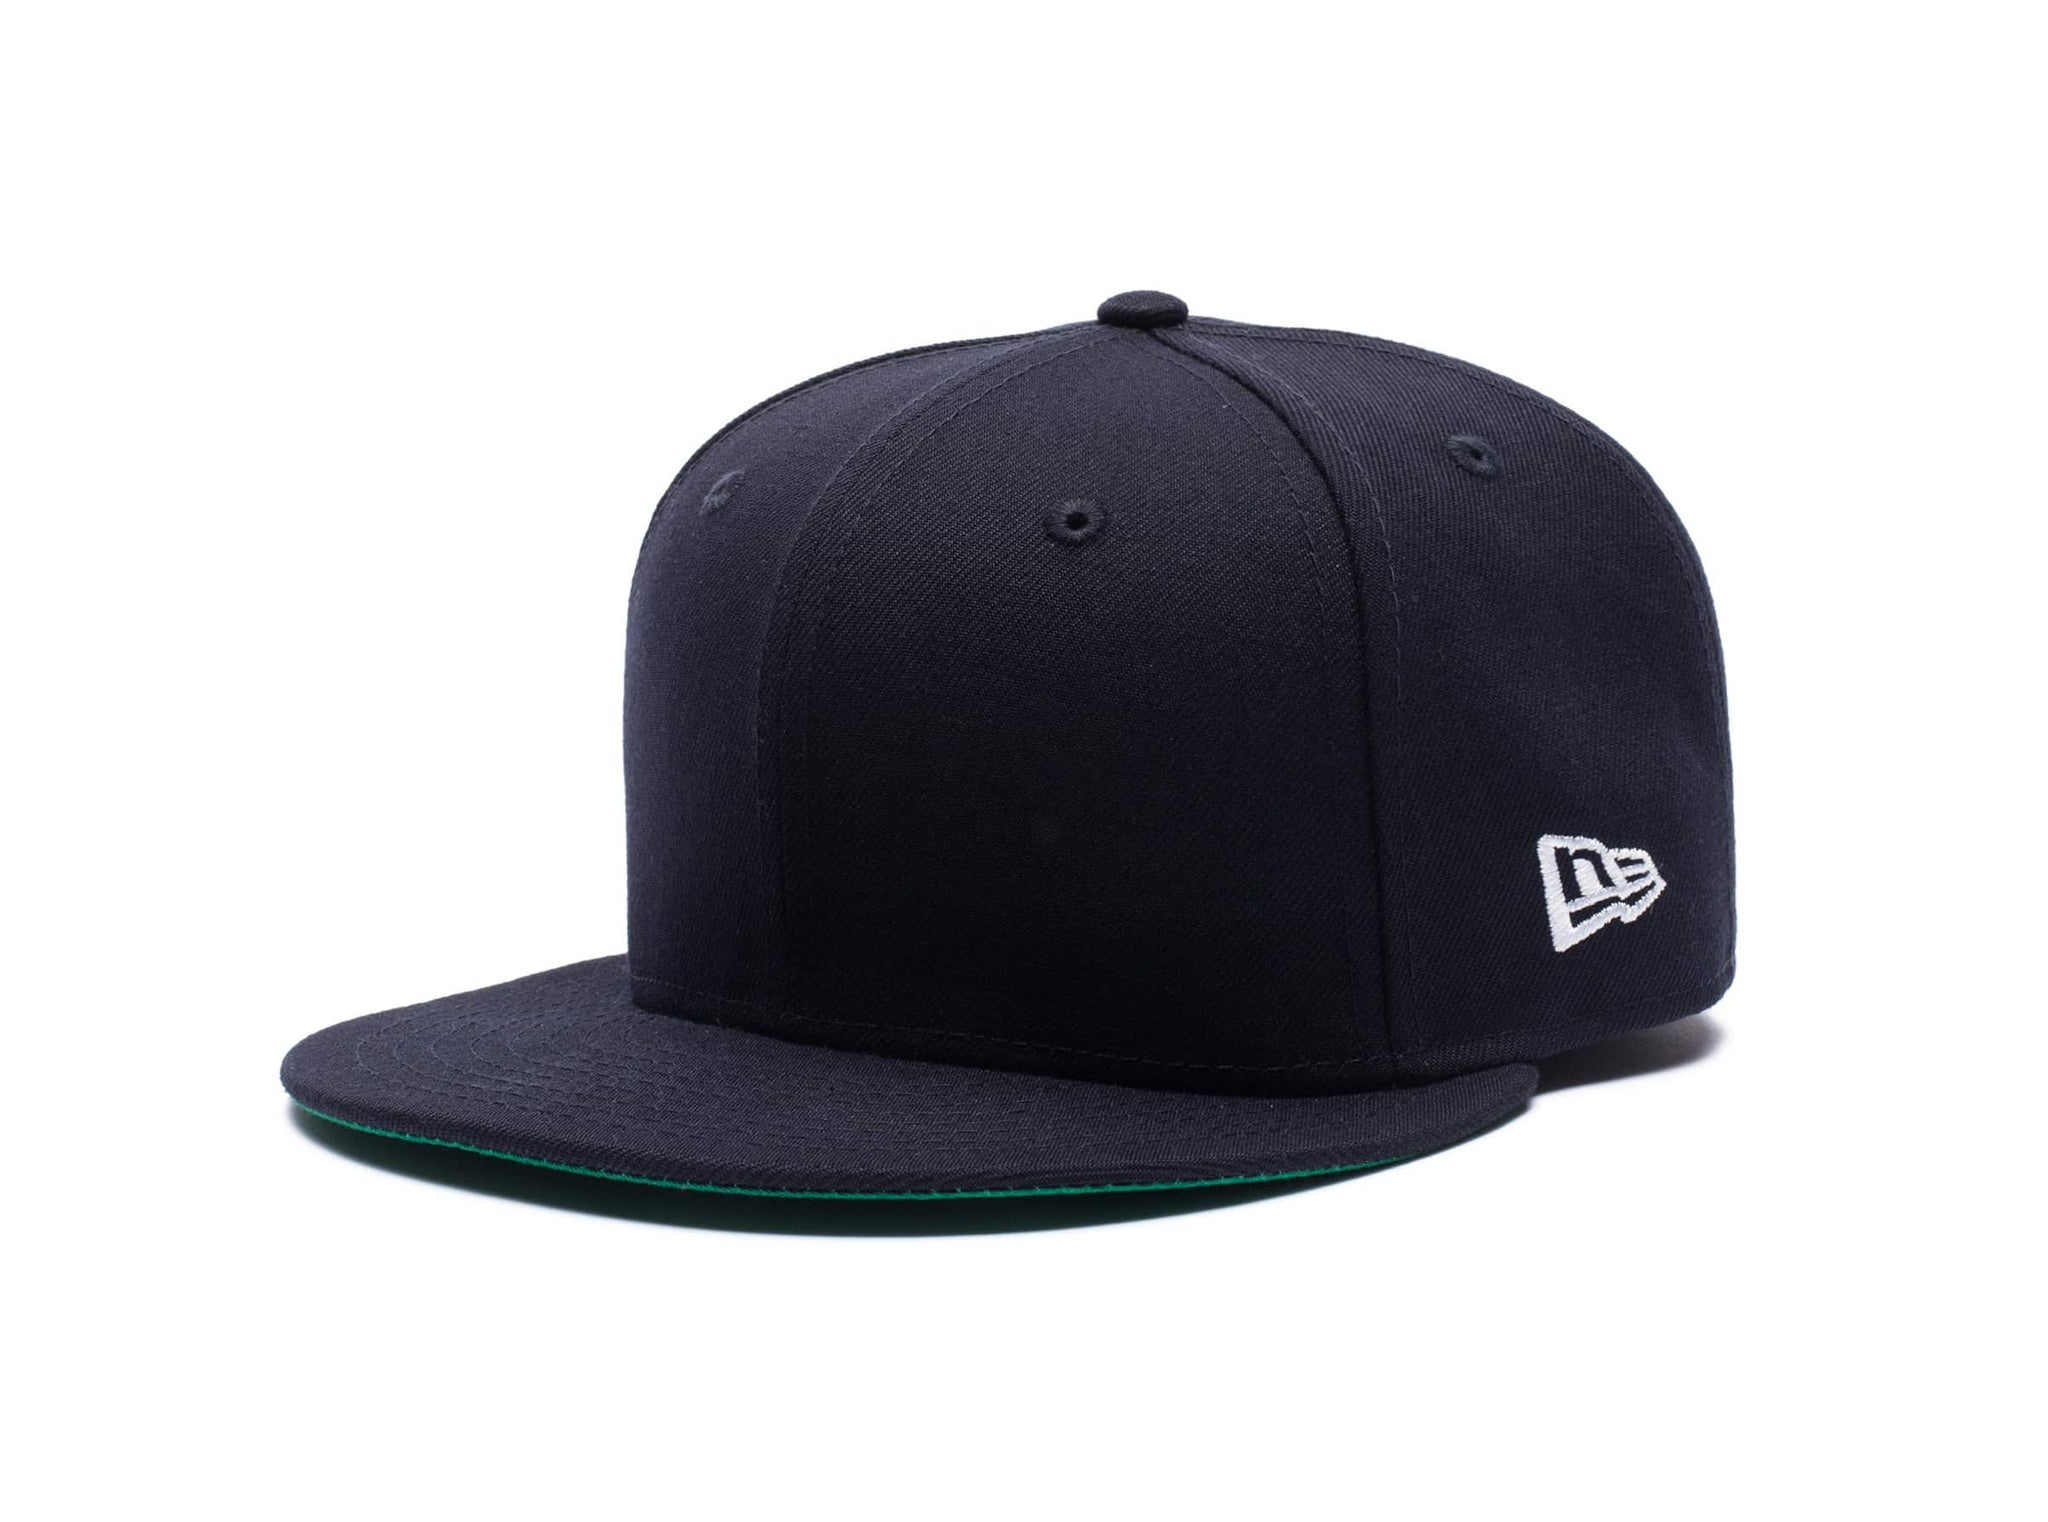 UNDEFEATED X NEW ERA FITTED